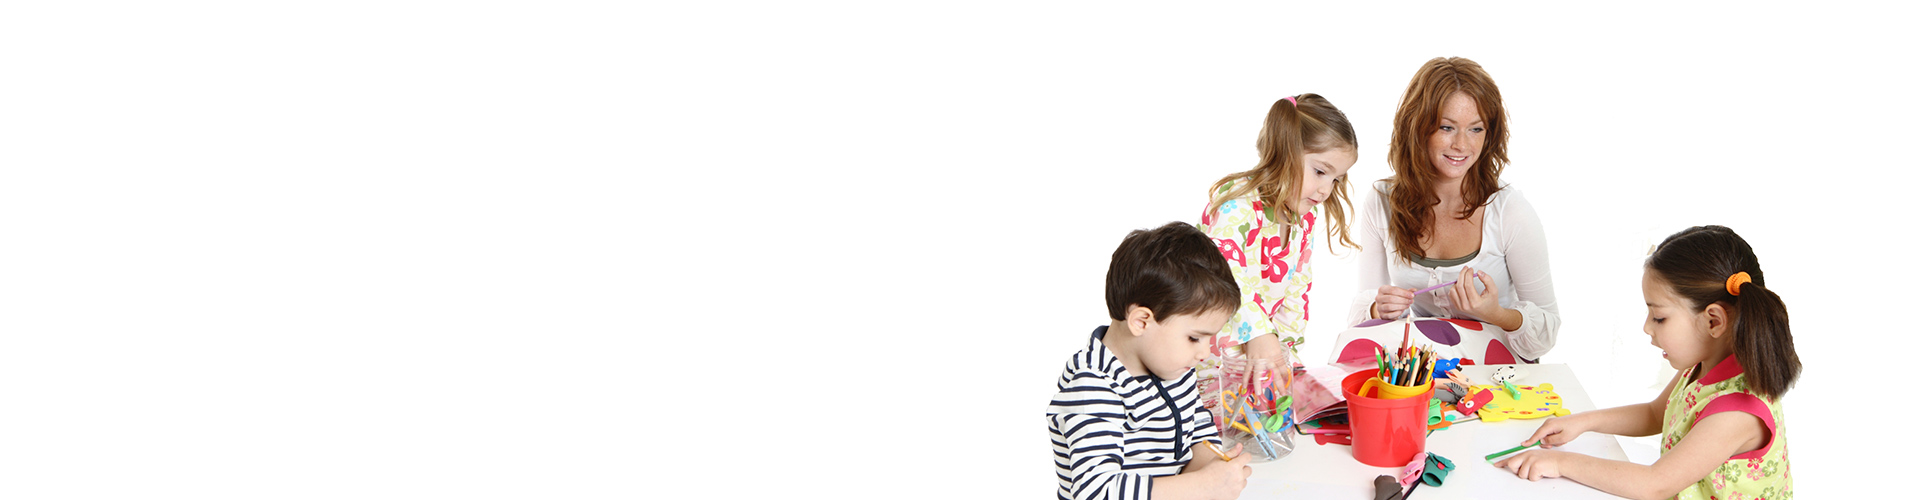 Childcare Distance Learning Course Image